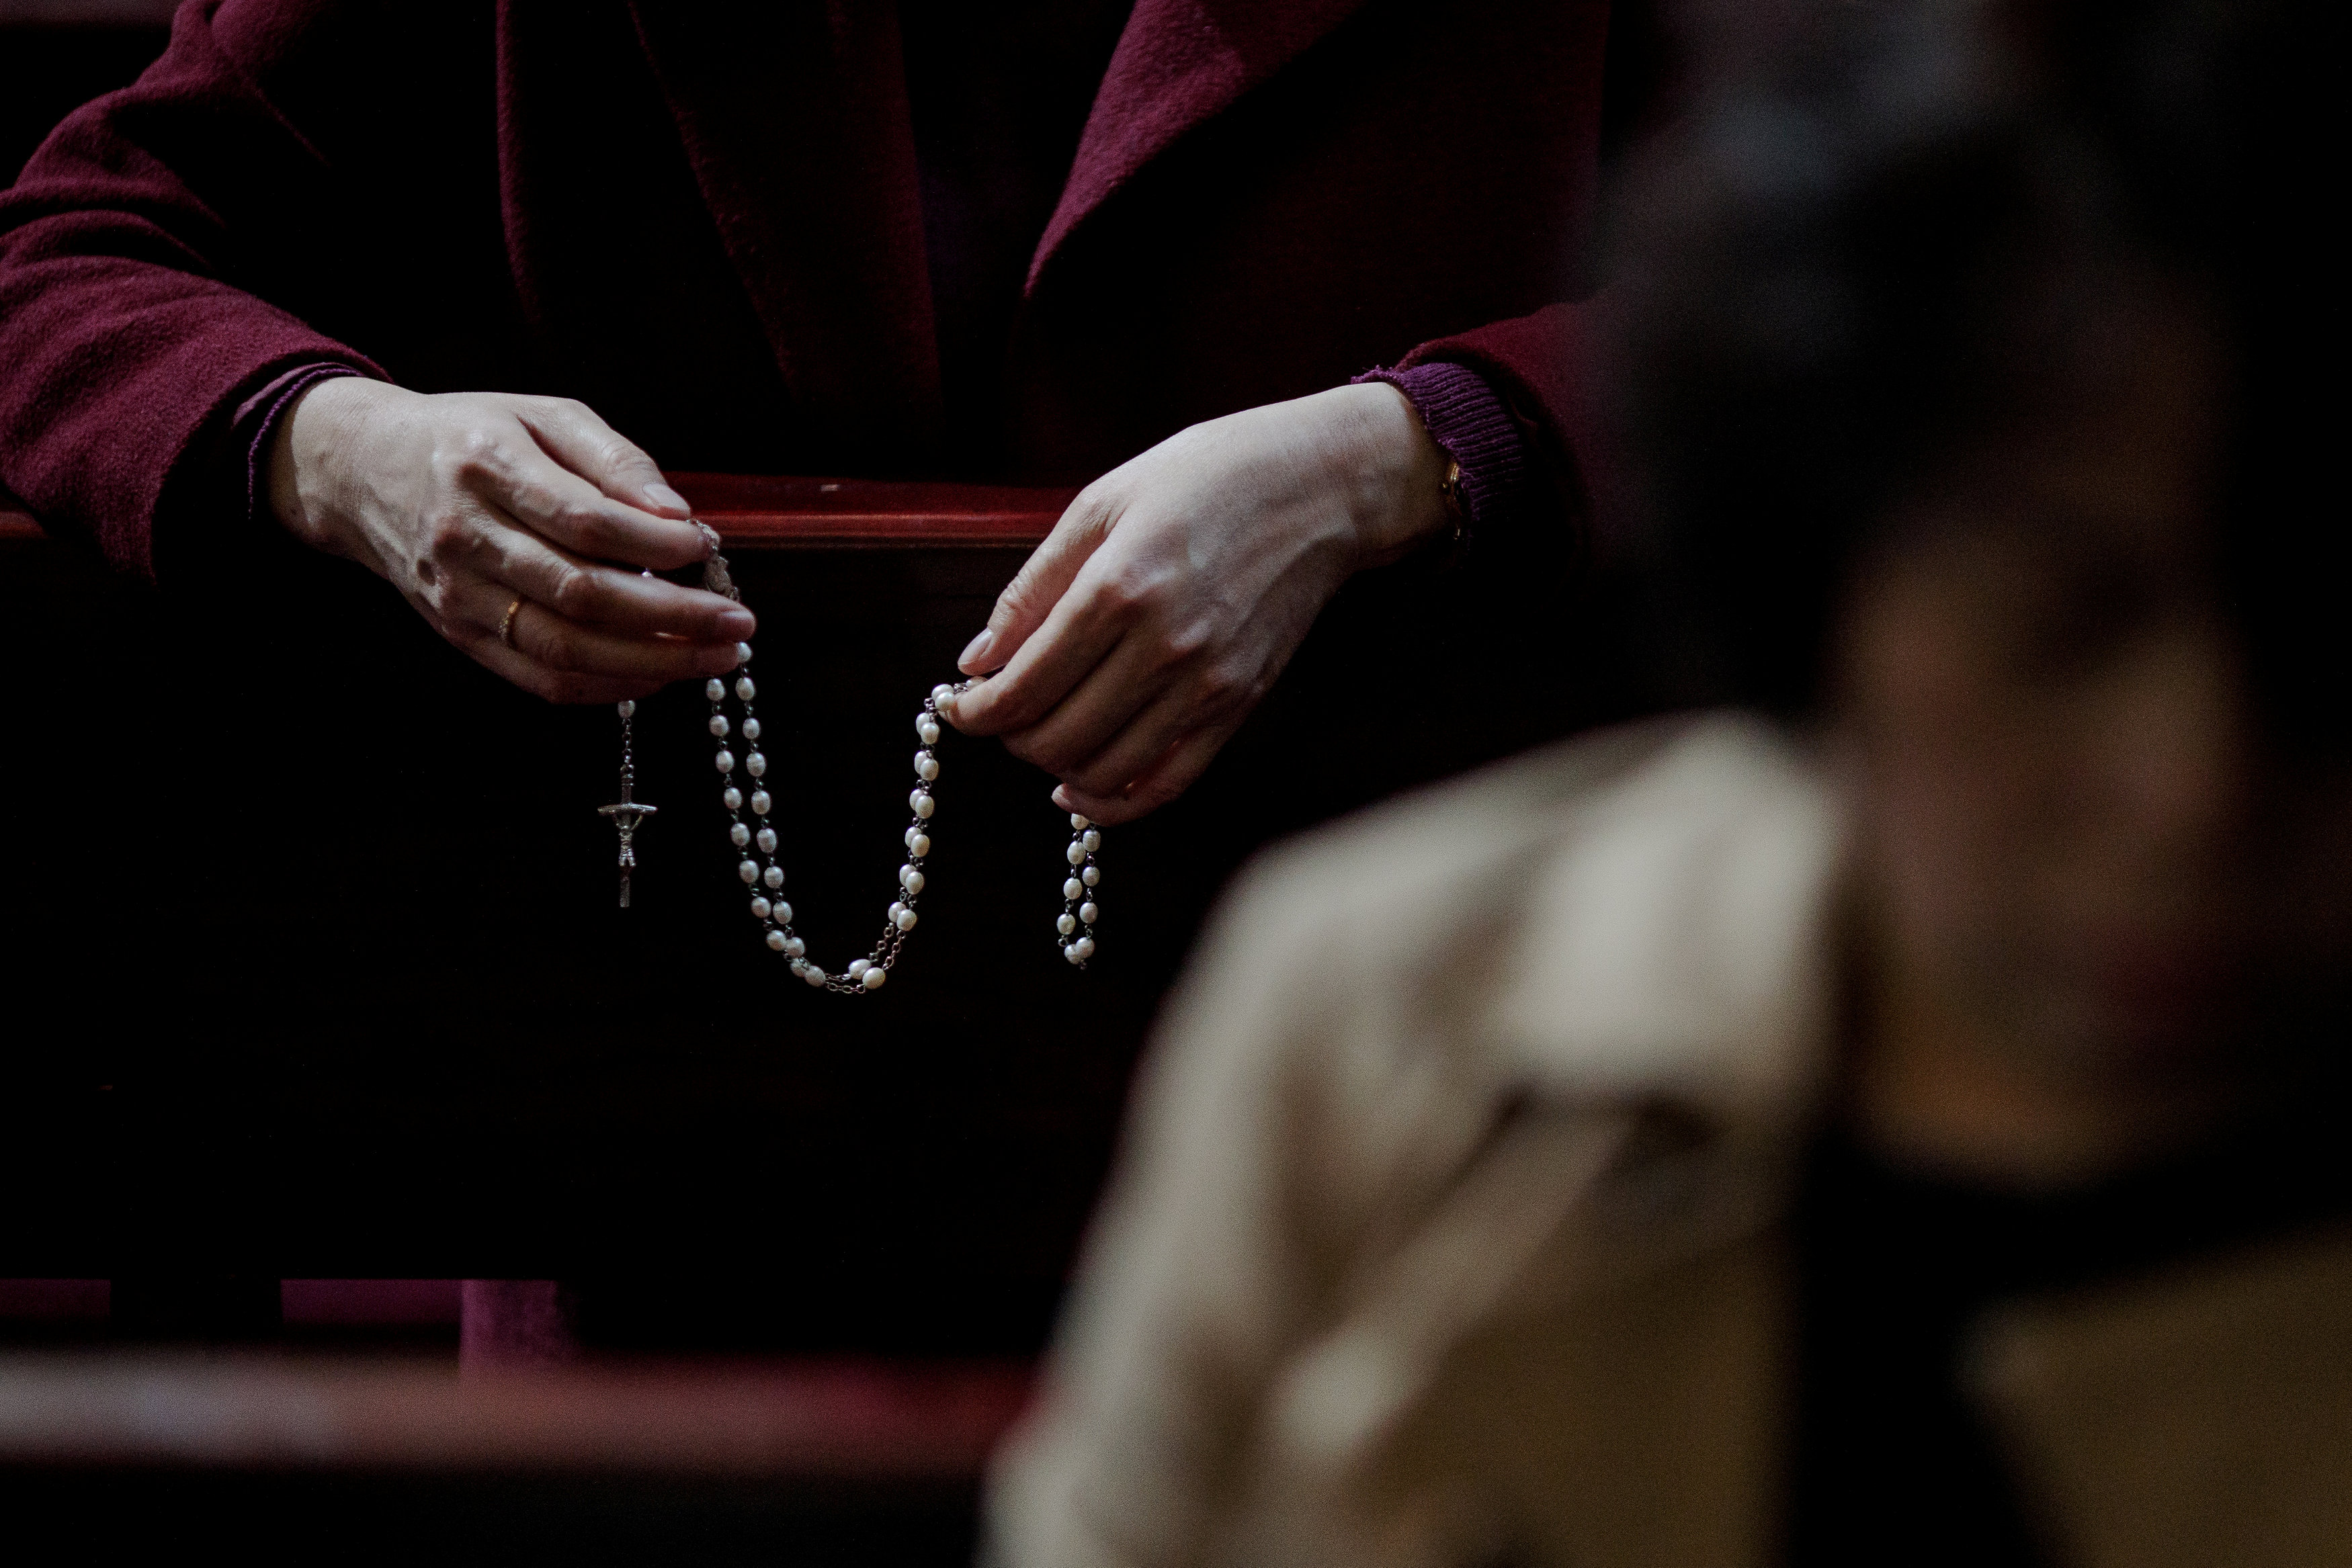 FILE PHOTO: A Catholic faithful holds a rosary during a mass on Holy Thursday at the Cathedral of the Immaculate Conception in Beijing, China March 29, 2018. REUTERS/Damir Sagolj/File Photo